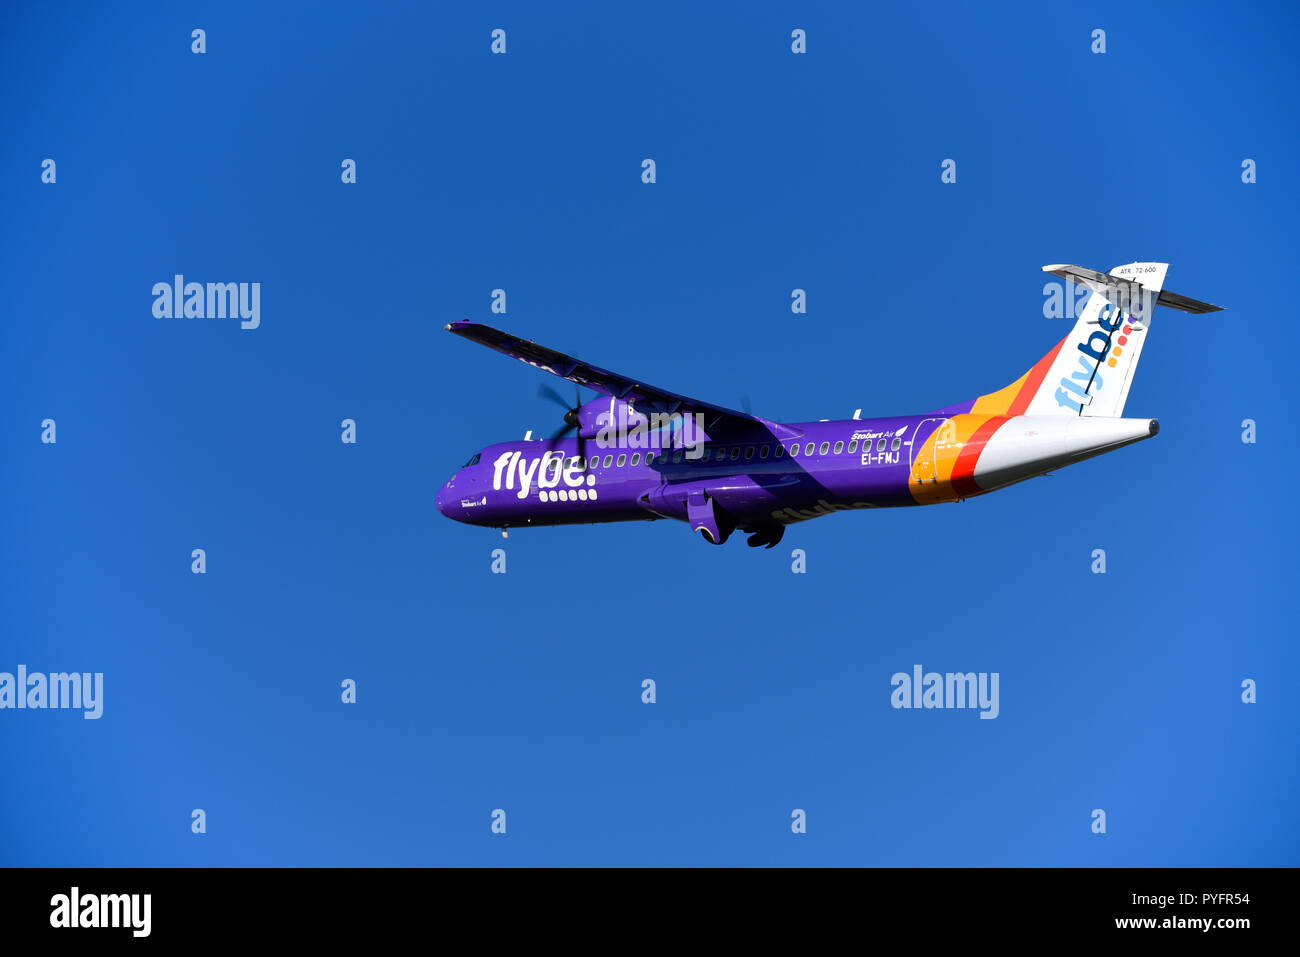 flybe-atr-72-600-ei-fmj-airliner-plane-taking-off-in-blue-sky-from-london-southend-airport-stobart-air-operation-space-for-copy-PYFR54.jpg